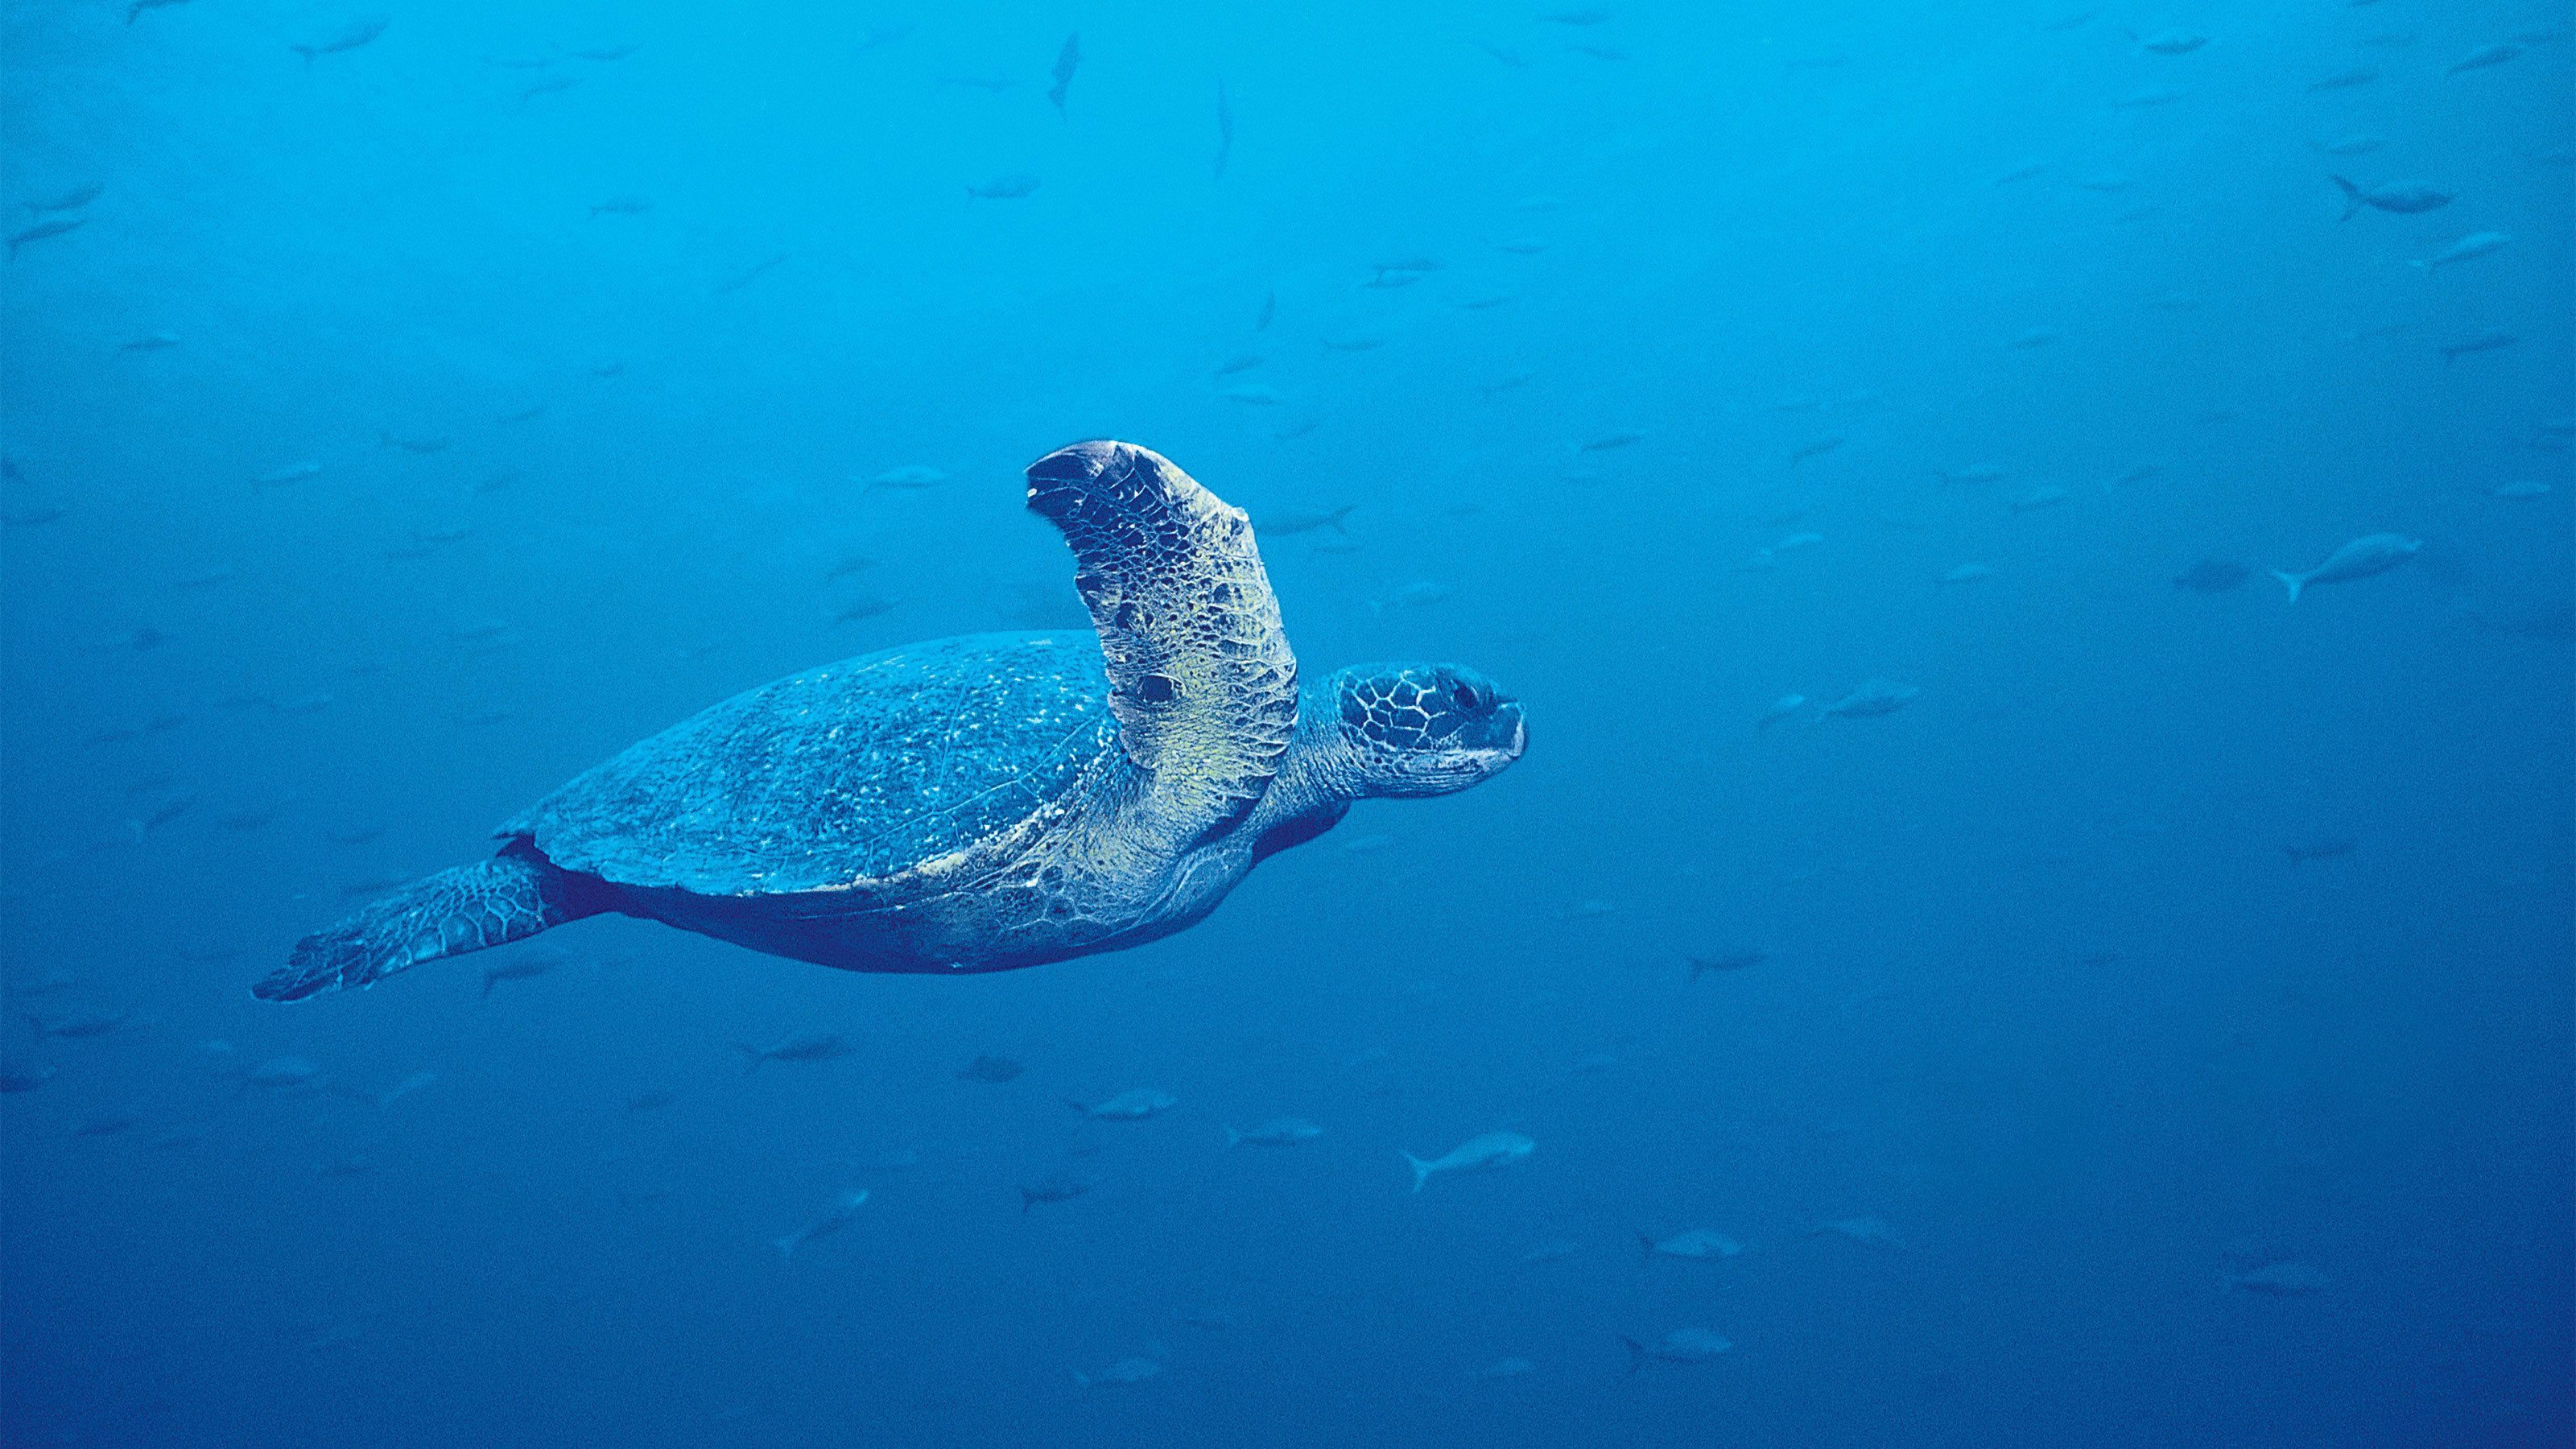 Sea turtle swimming under water in the glassbottom reef explorer in Maui